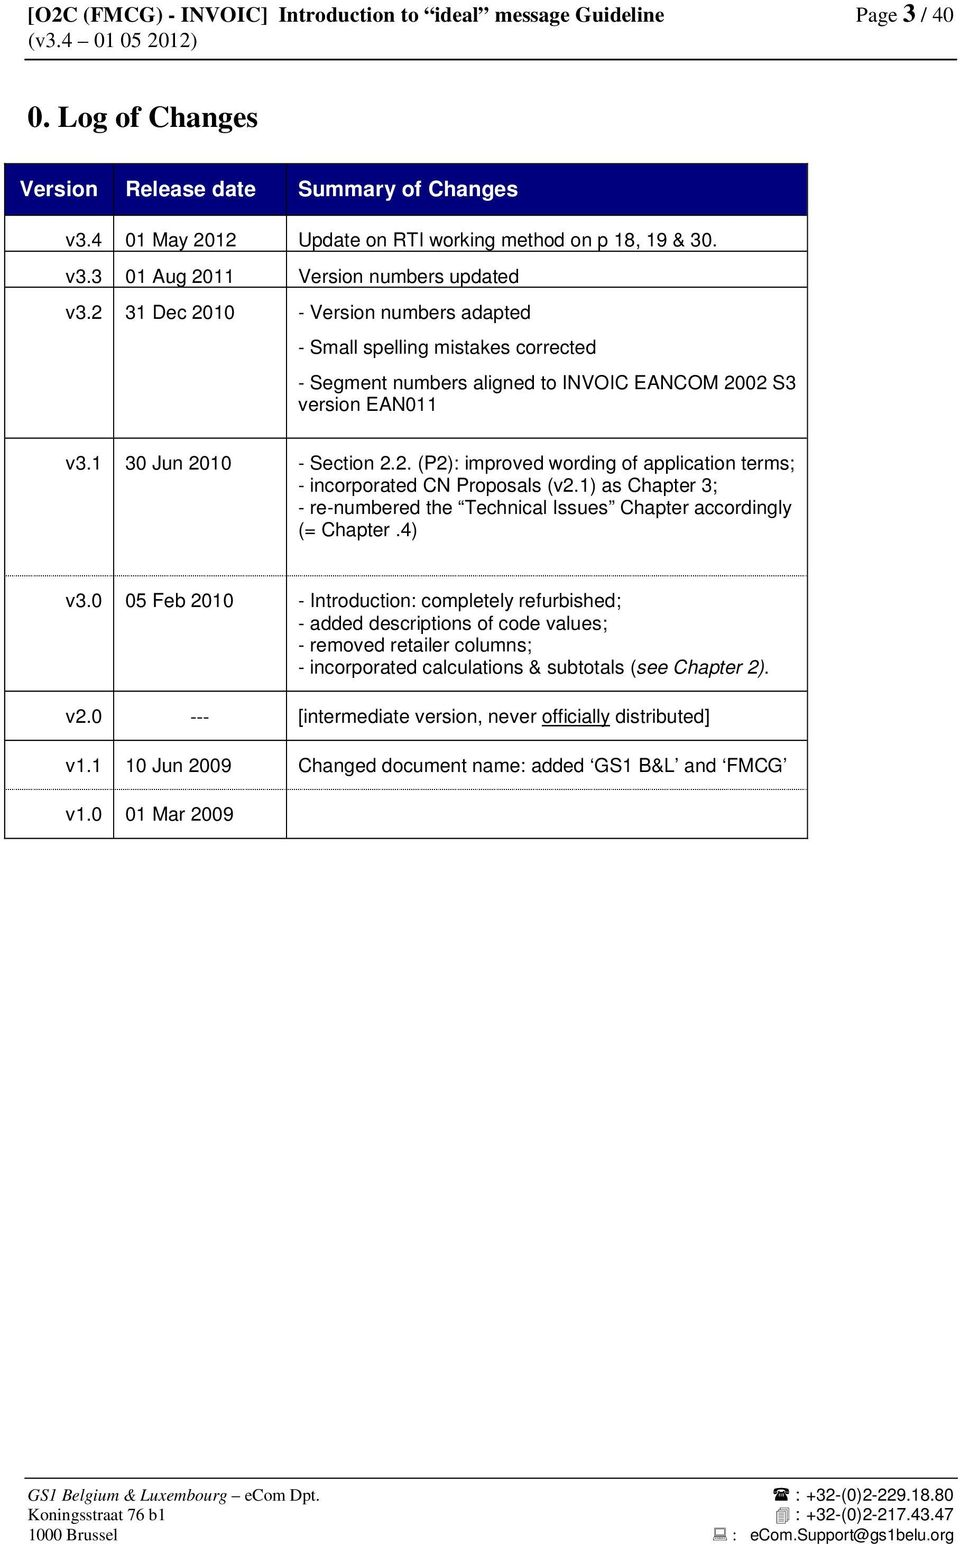 2 31 Dec 2010 - Version numbers adapted - Small spelling mistakes corrected - Segment numbers aligned to INVOIC EANCOM 2002 S3 version EAN011 v3.1 30 Jun 2010 - Section 2.2. (P2): improved wording of application terms; - incorporated CN Proposals (v2.